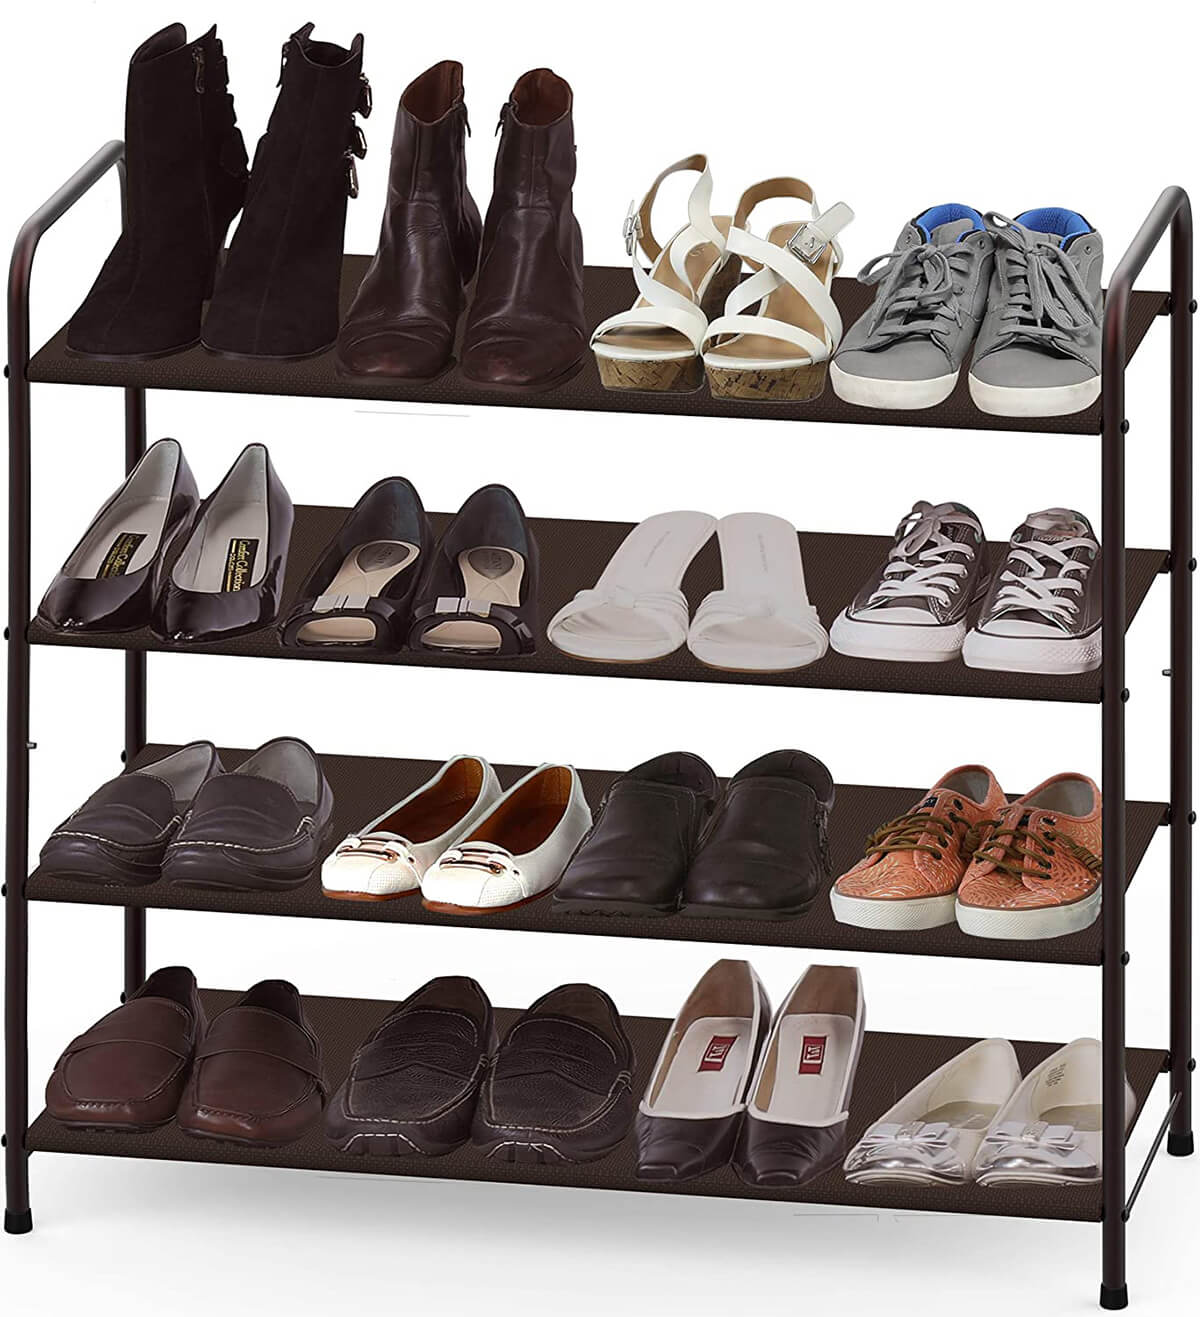 Four-Tier Rack with Fabric Shelves